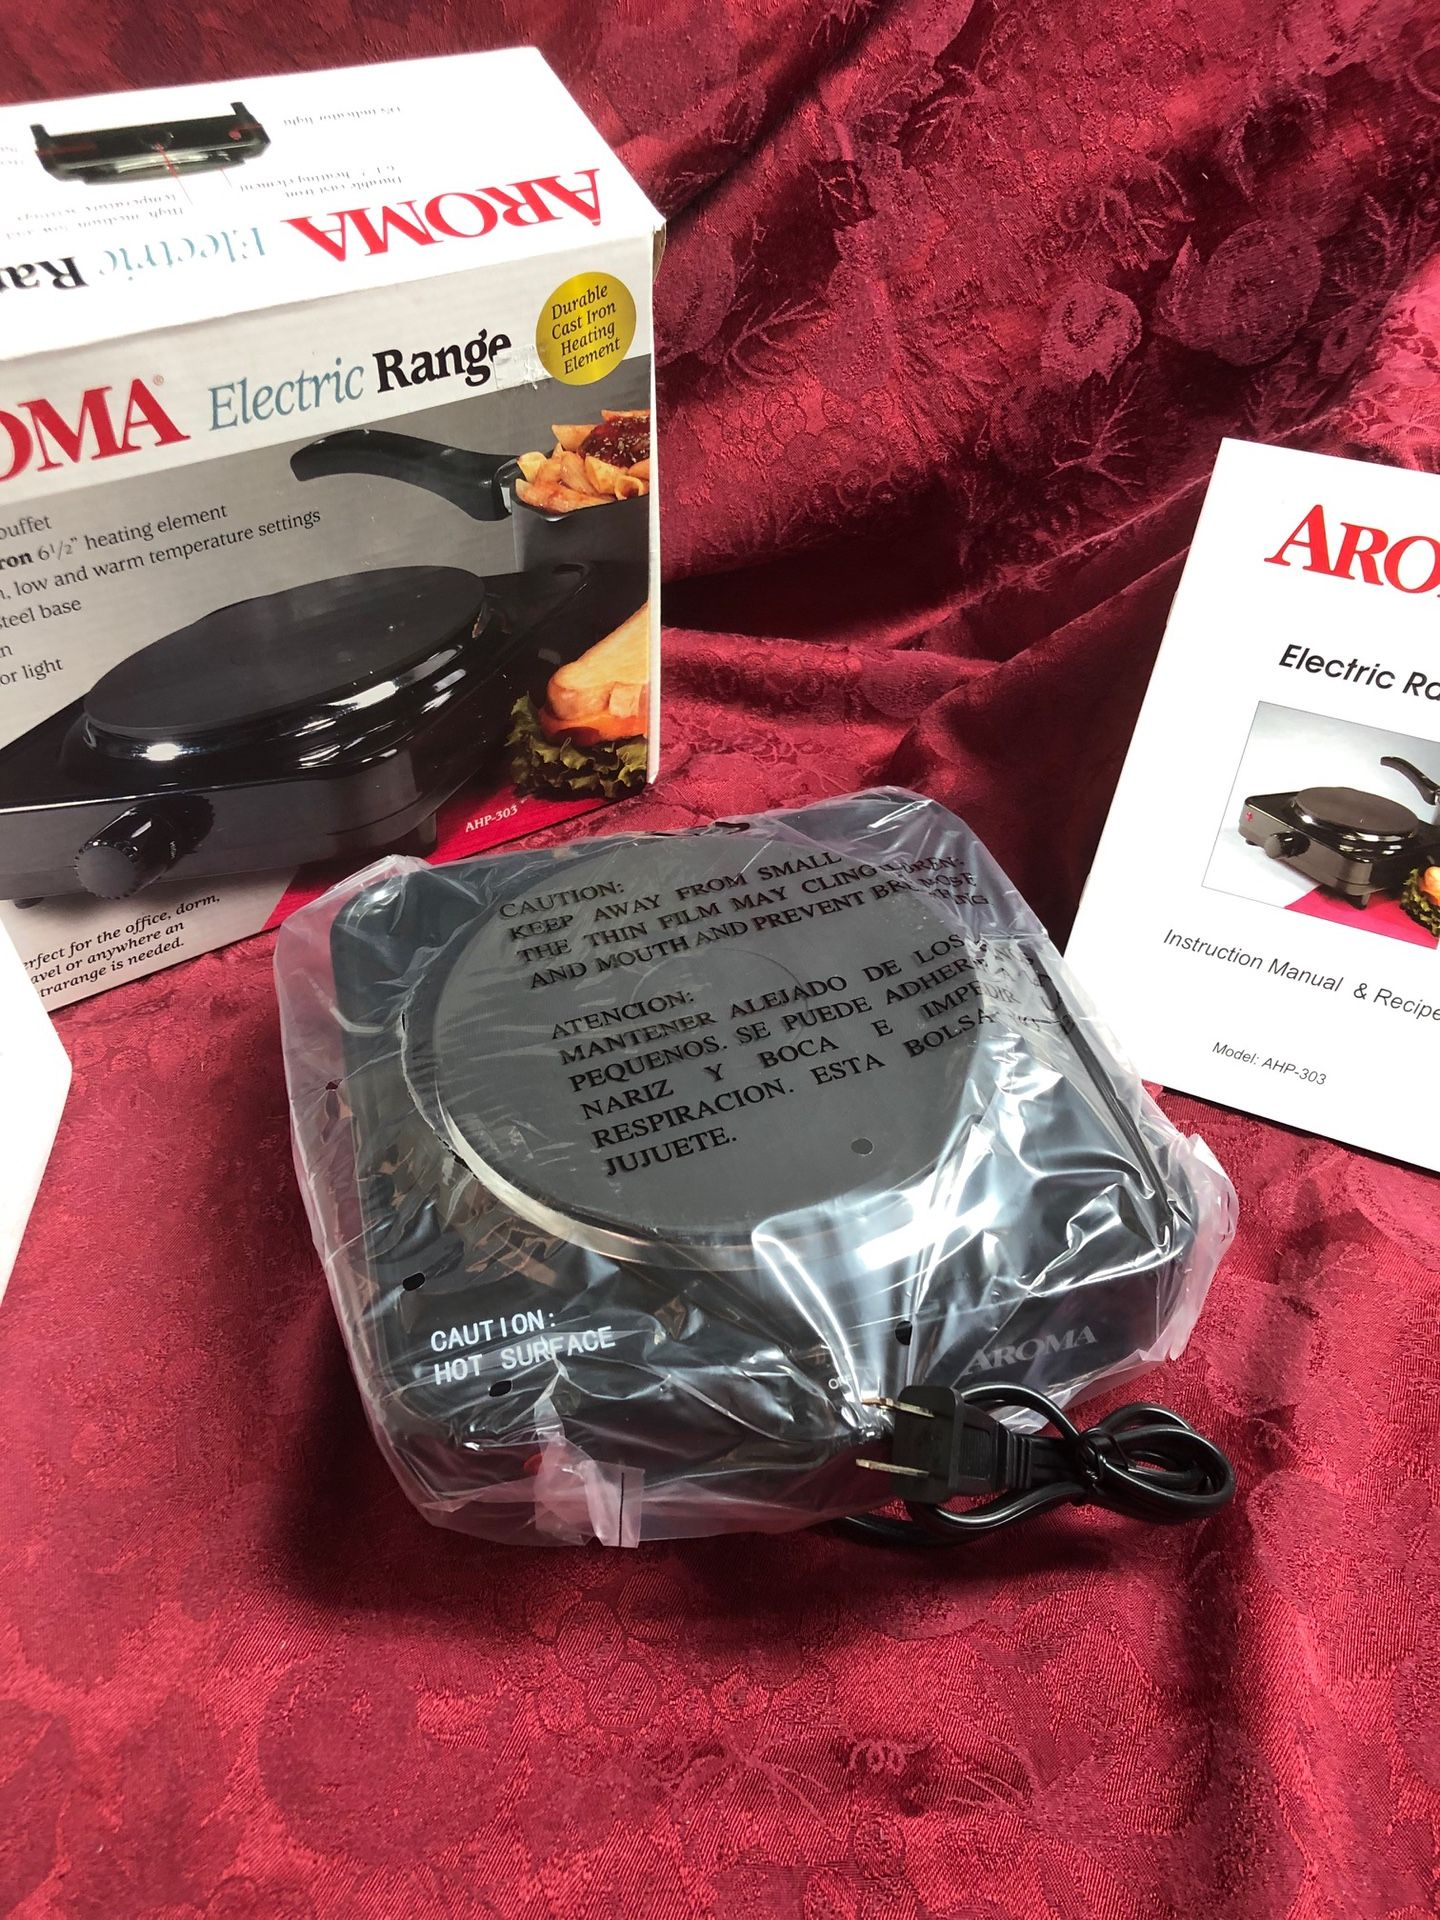 Kitchen Package – Oster Blender / Aroma Electric Range - Hot Plate / Toastmaster 1119 Coffee Grinder